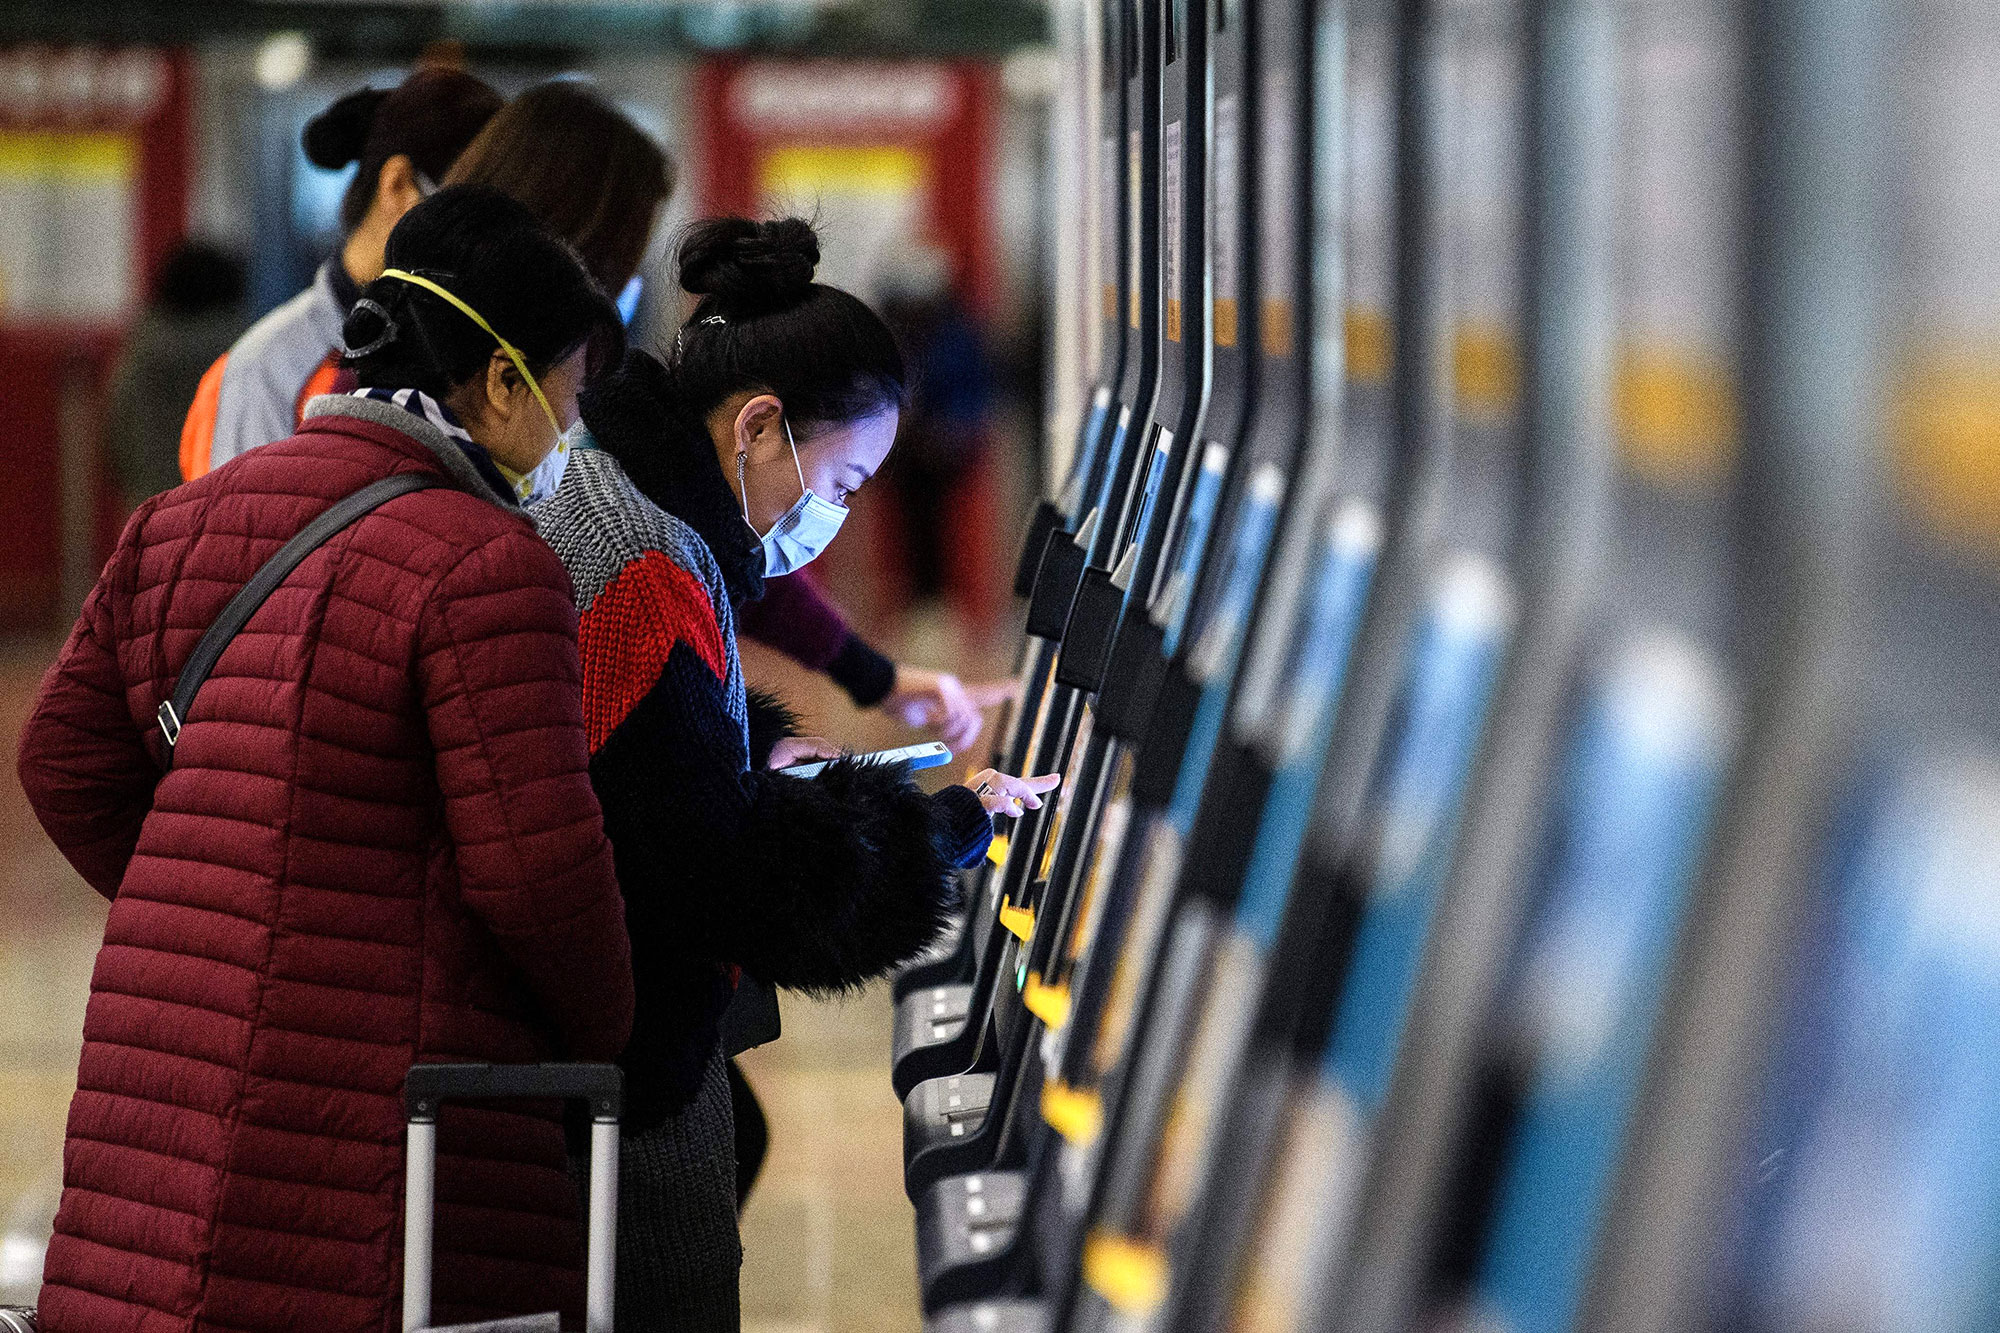 Commuters wear facemasks as they buy tickets inside the high-speed train station connecting Hong Kong to mainland China.